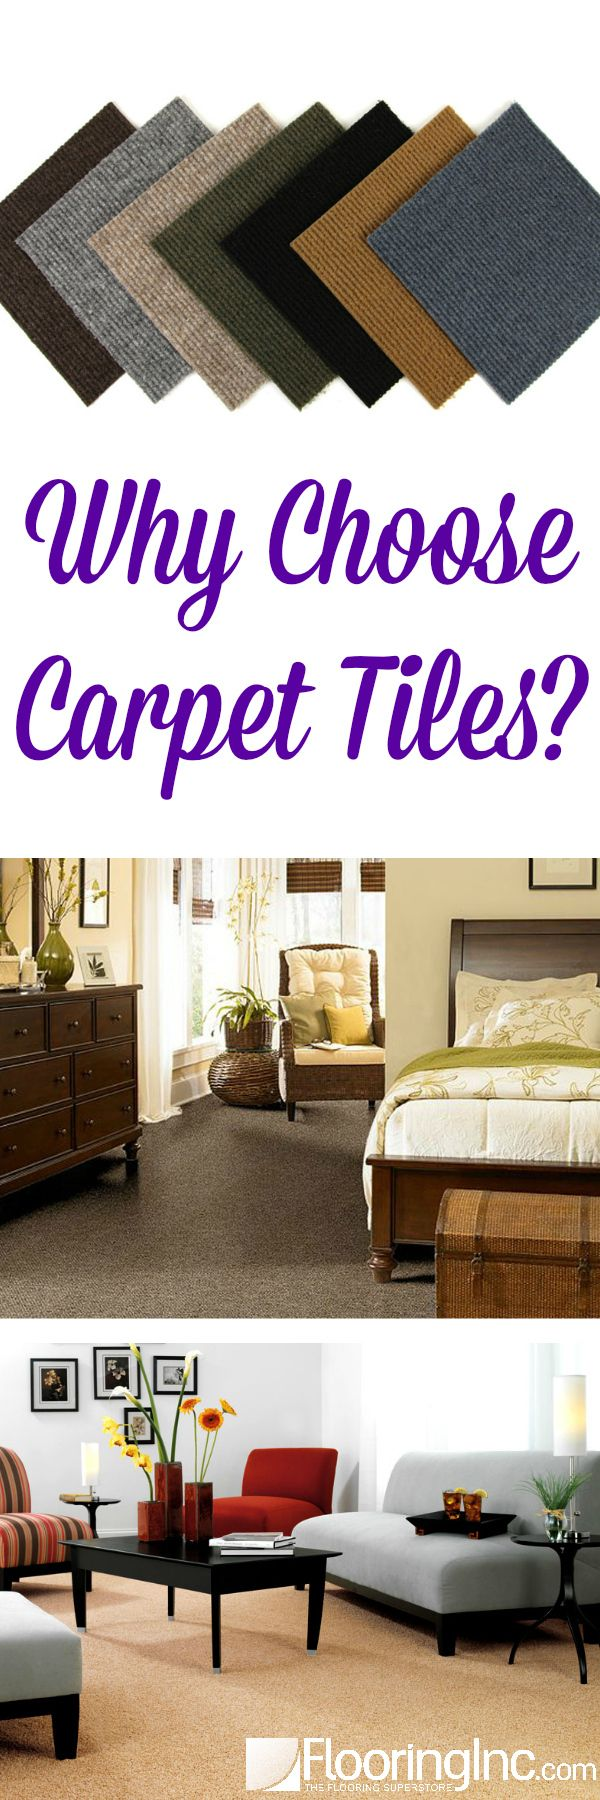 Harley color carpet tiles - Carpet Tiles Are A New Trend For You To Consider So Easy And Maintainable